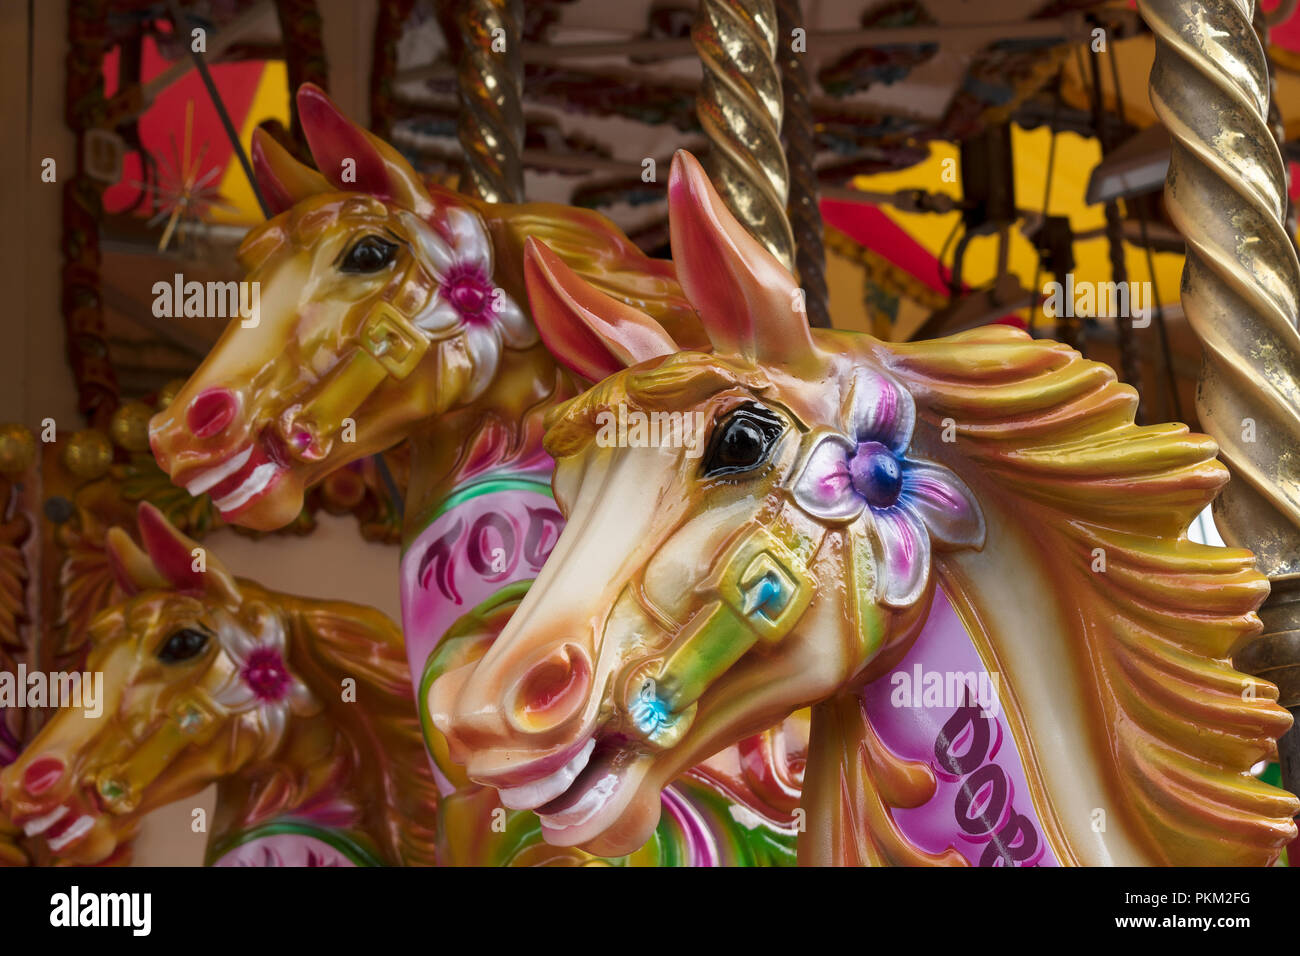 Carousel Horse Head Horses Heads Detail Fairground Merry Go